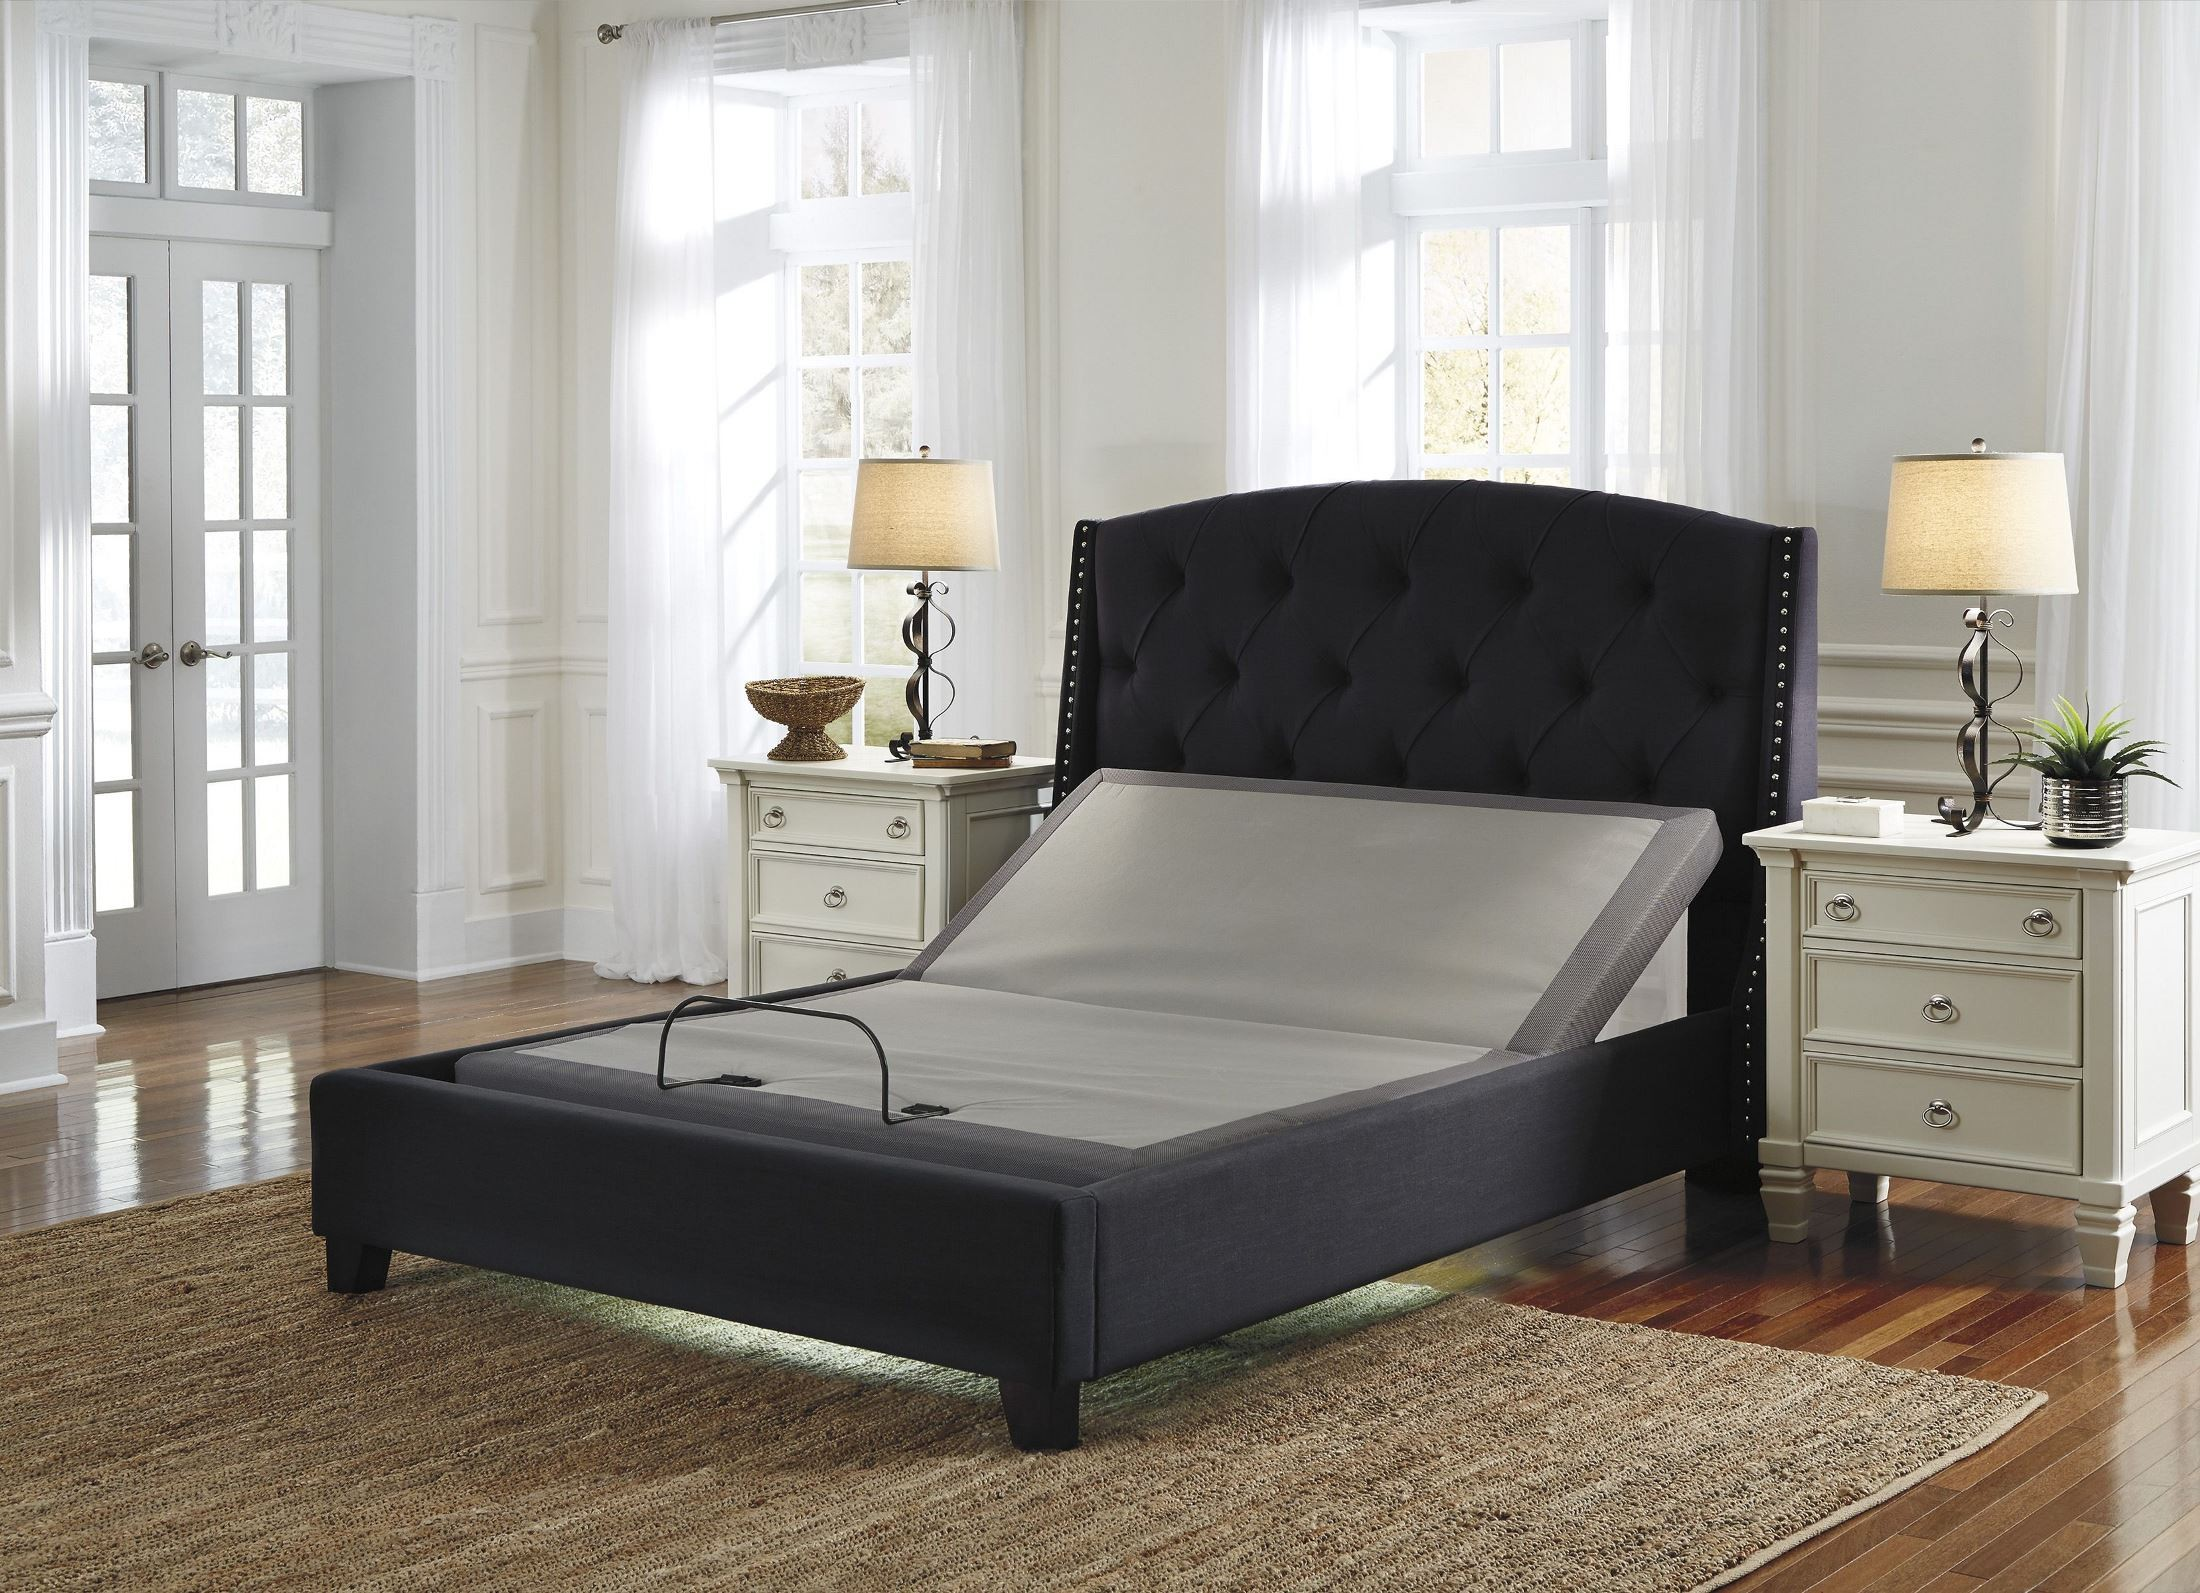 Gray Queen Zero Gravity Adjustable Bed From Ashley